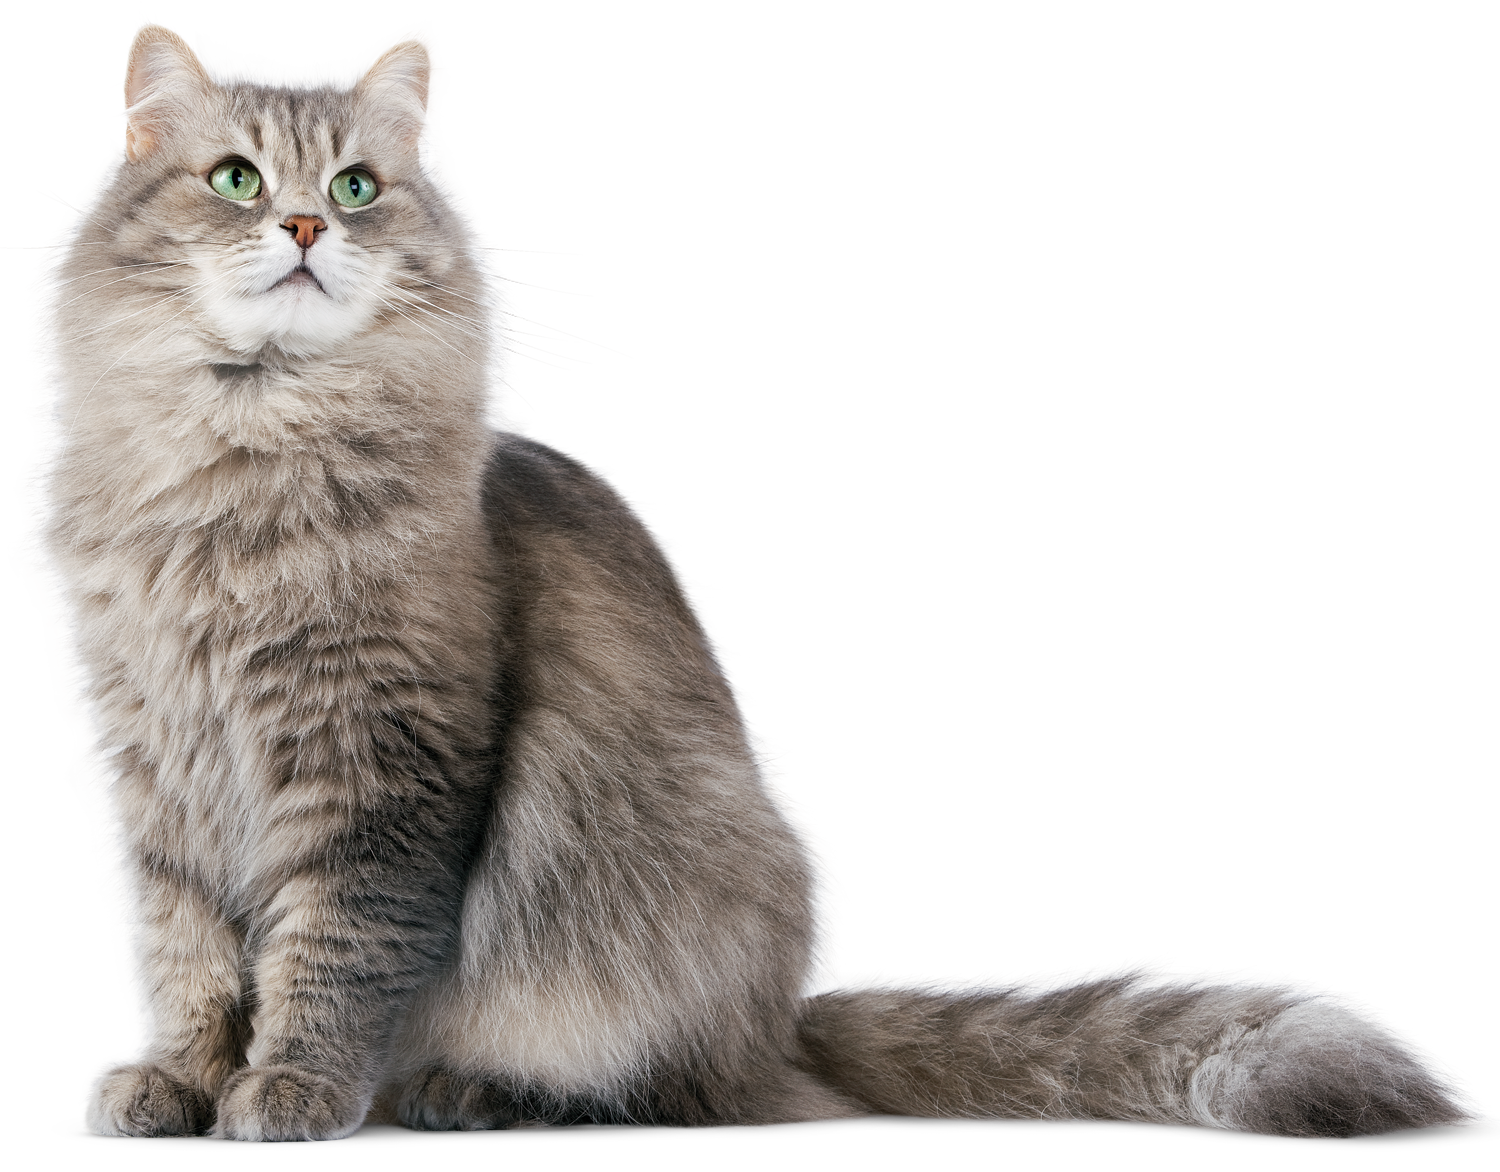 Cute Cat Png image #40346